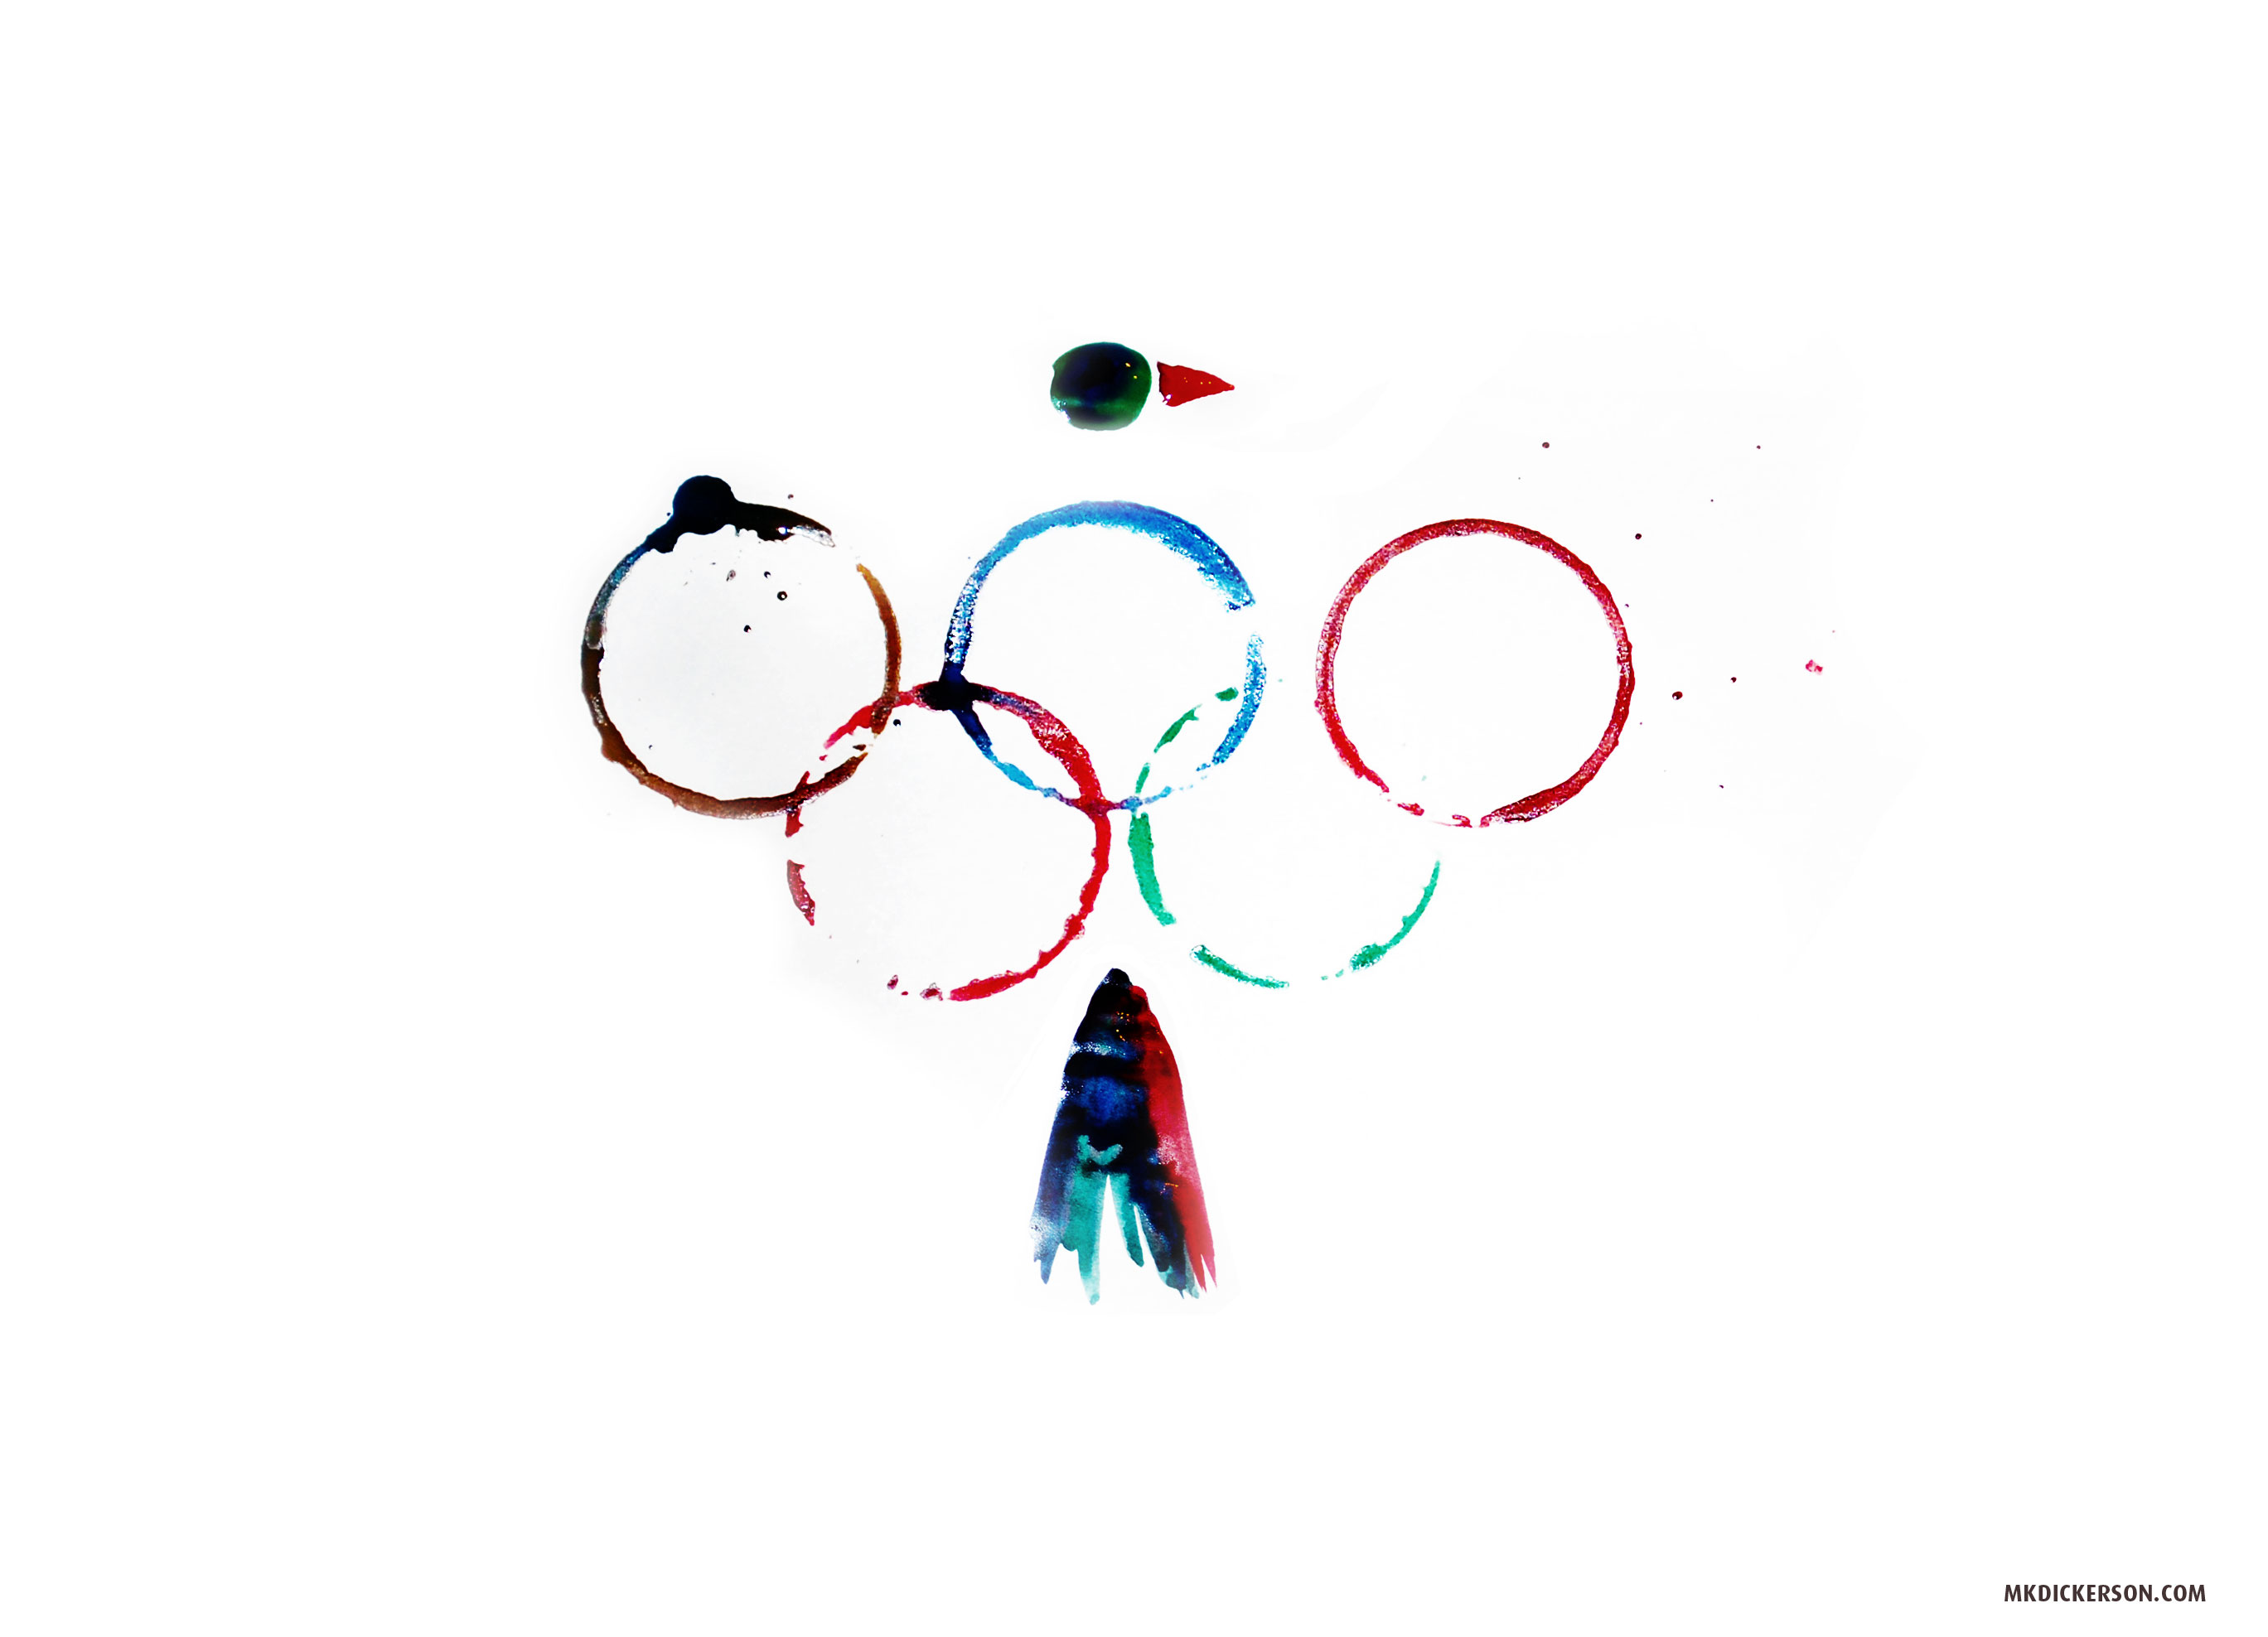 Olympic gold rings